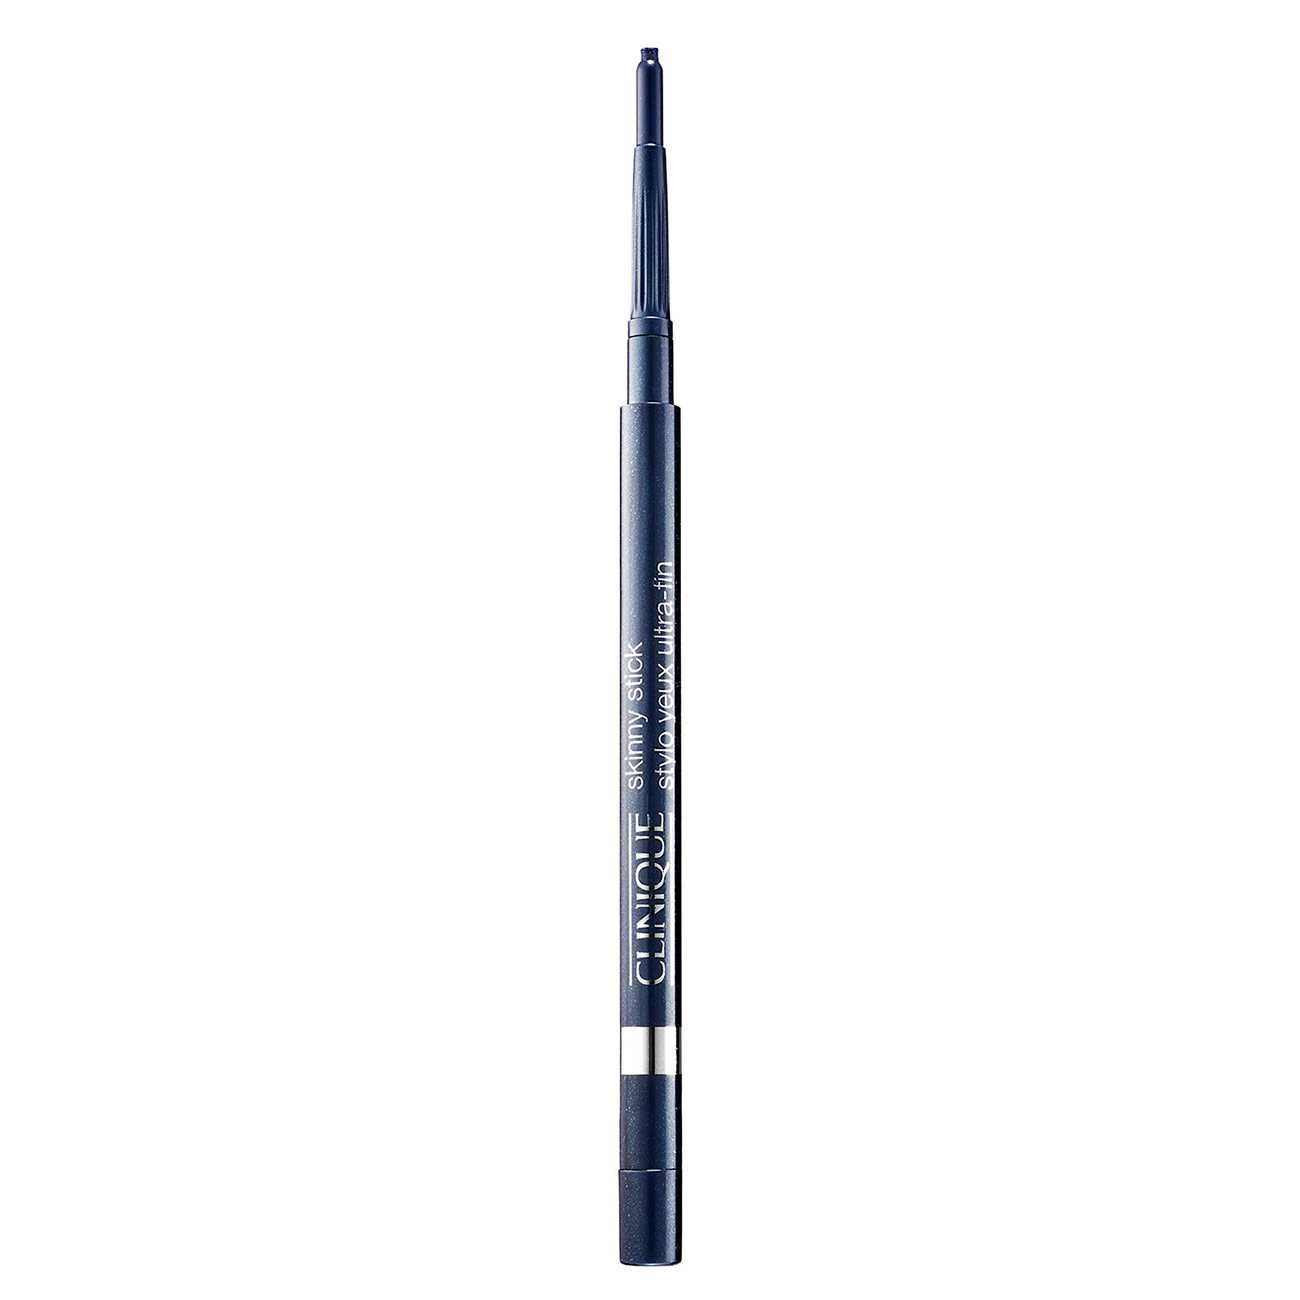 Skinny Stick 6 G Royal Blue 5 Clinique imagine 2021 bestvalue.eu